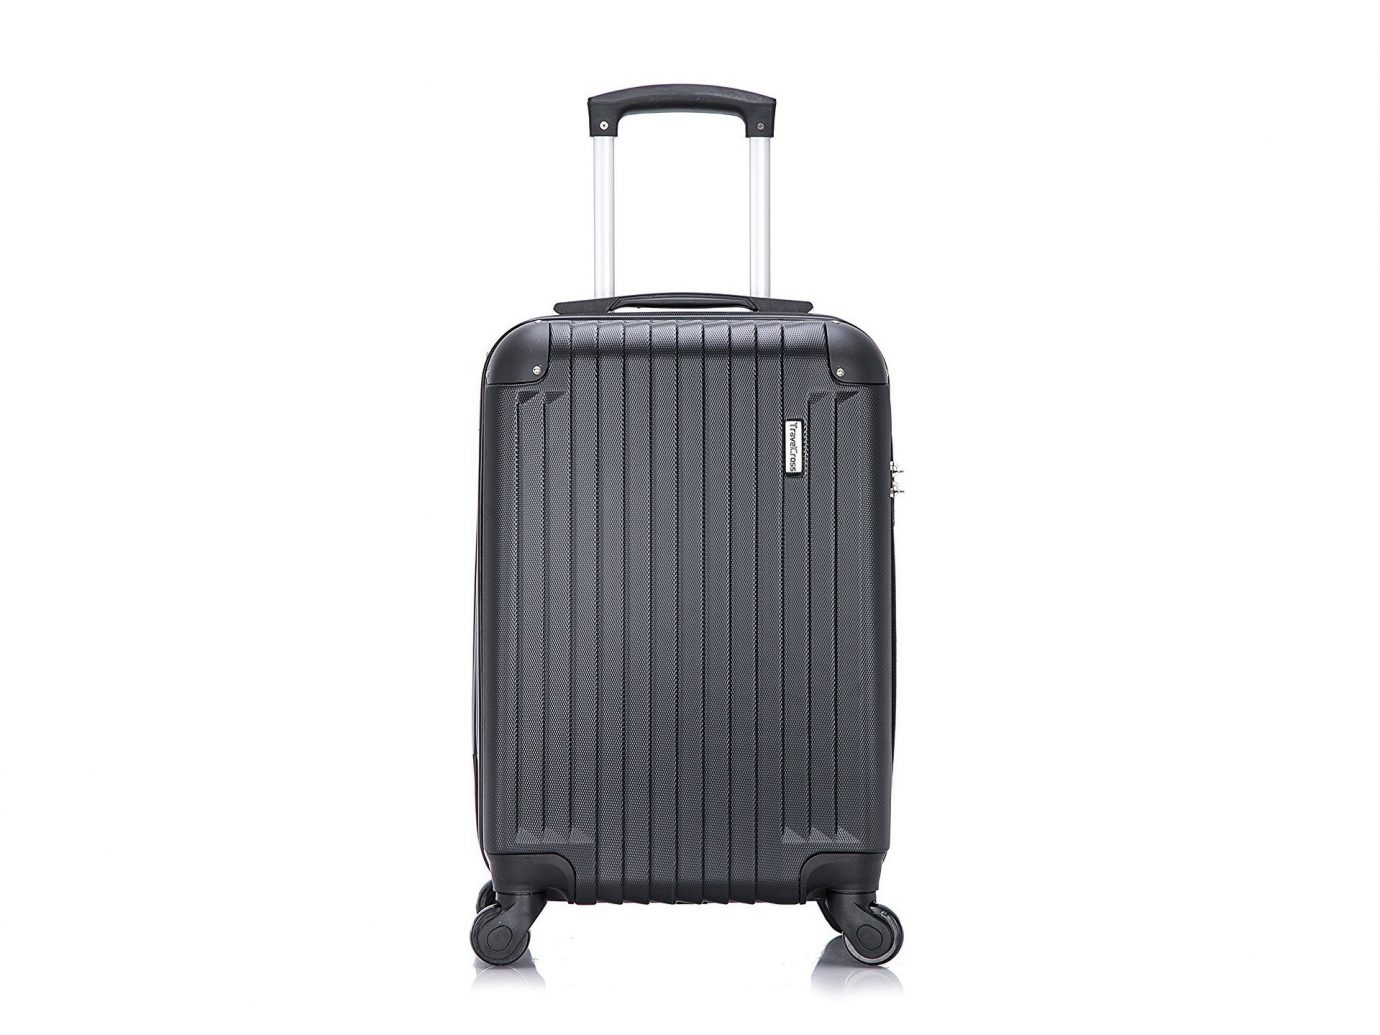 Travel Tips luggage suitcase piece bag product black hand luggage case luggage & bags product design baggage stack